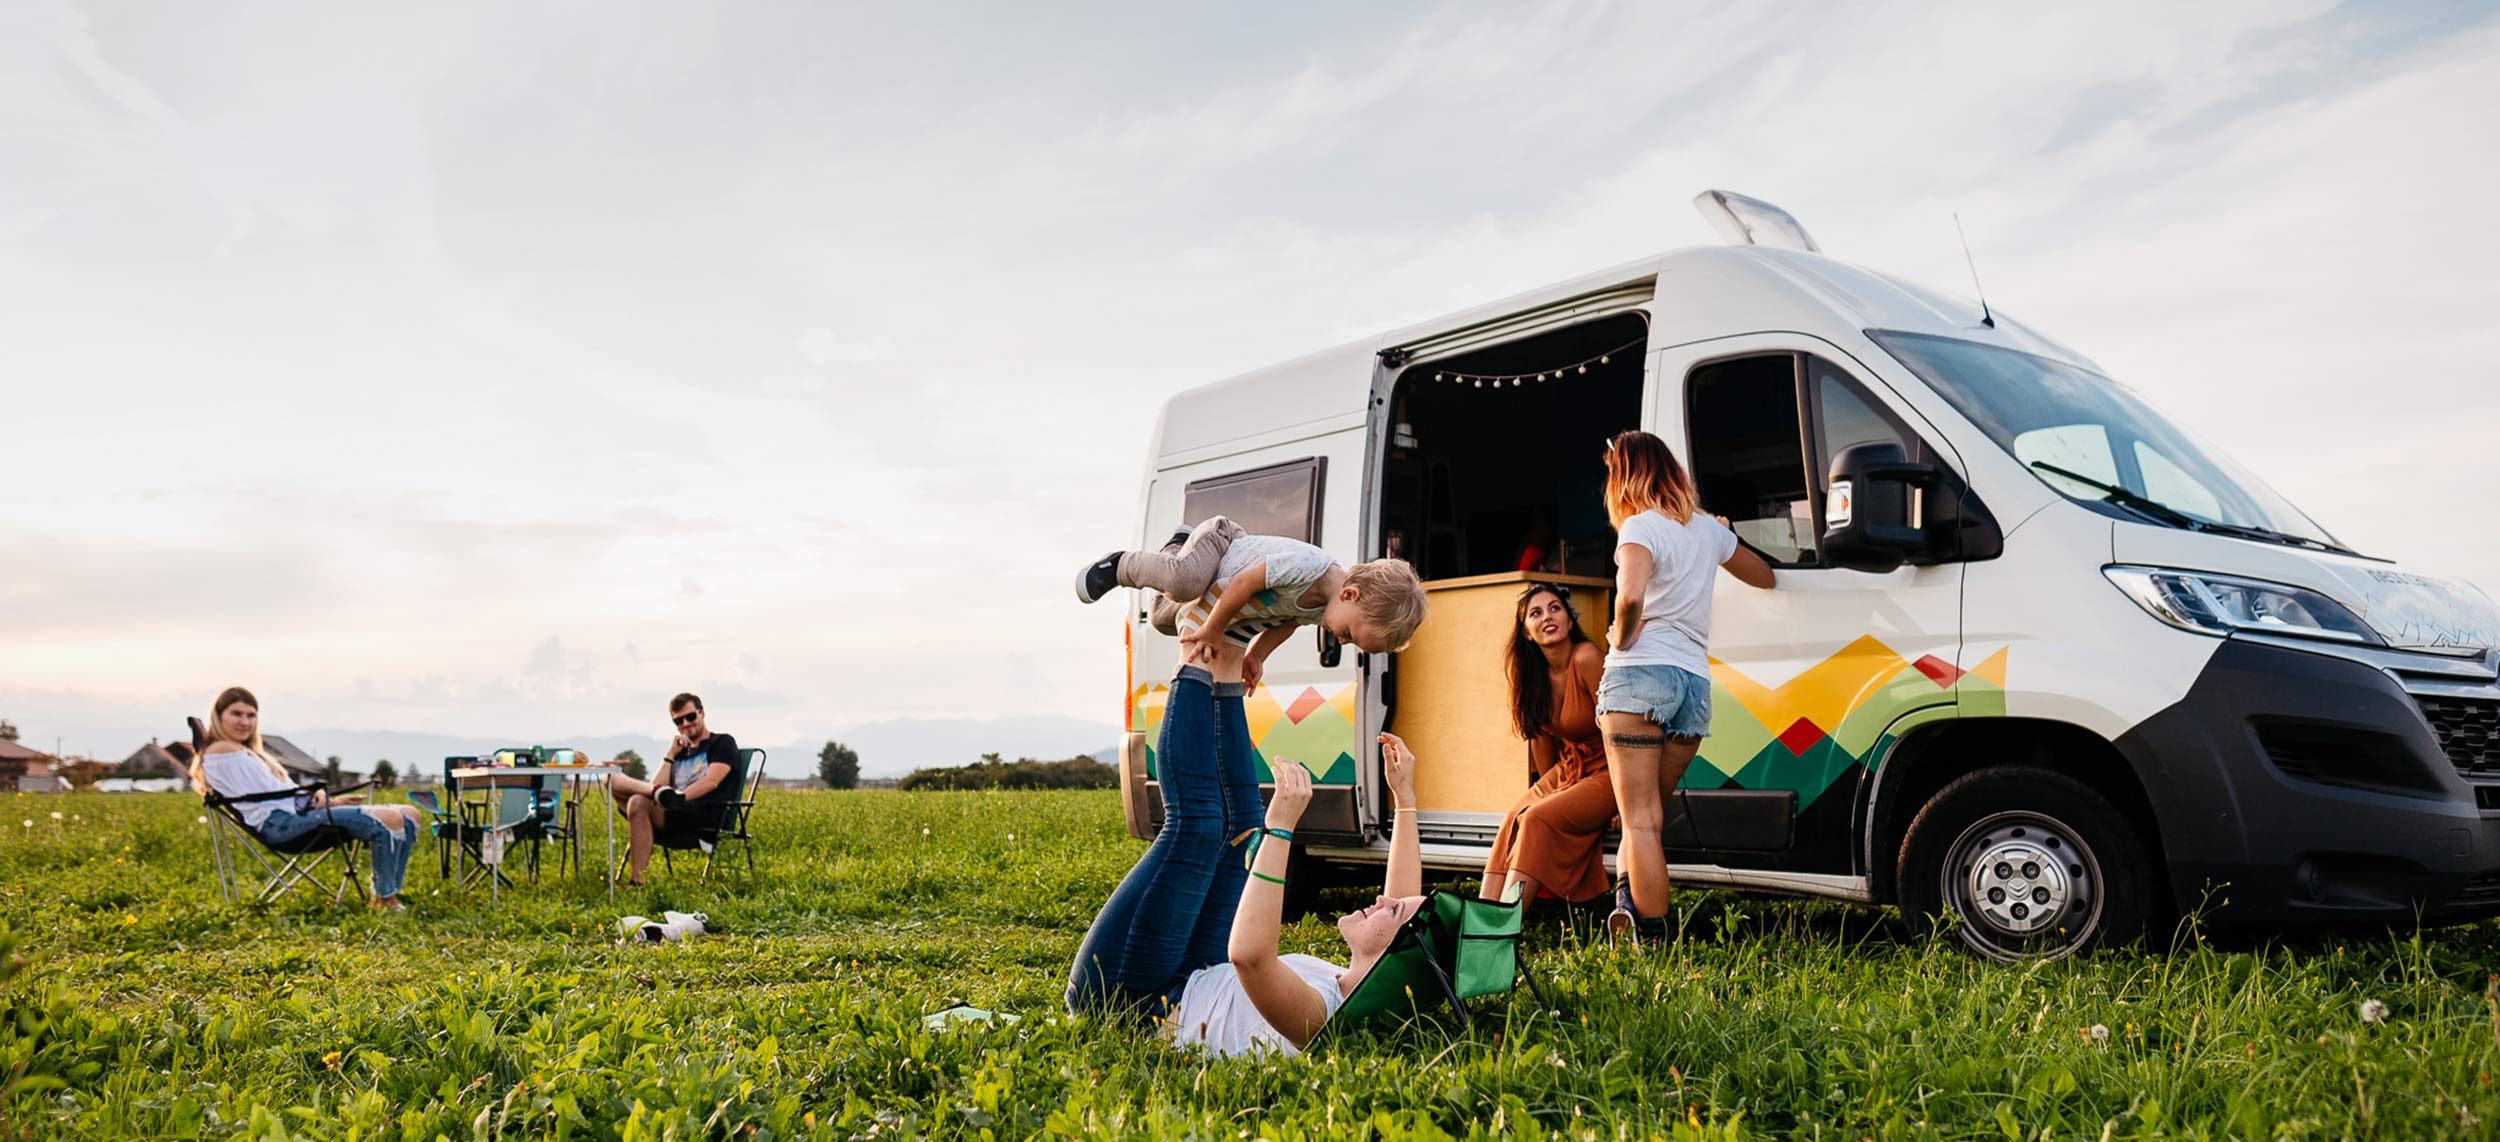 Nest Campers Cheap Campervan Rental Europe